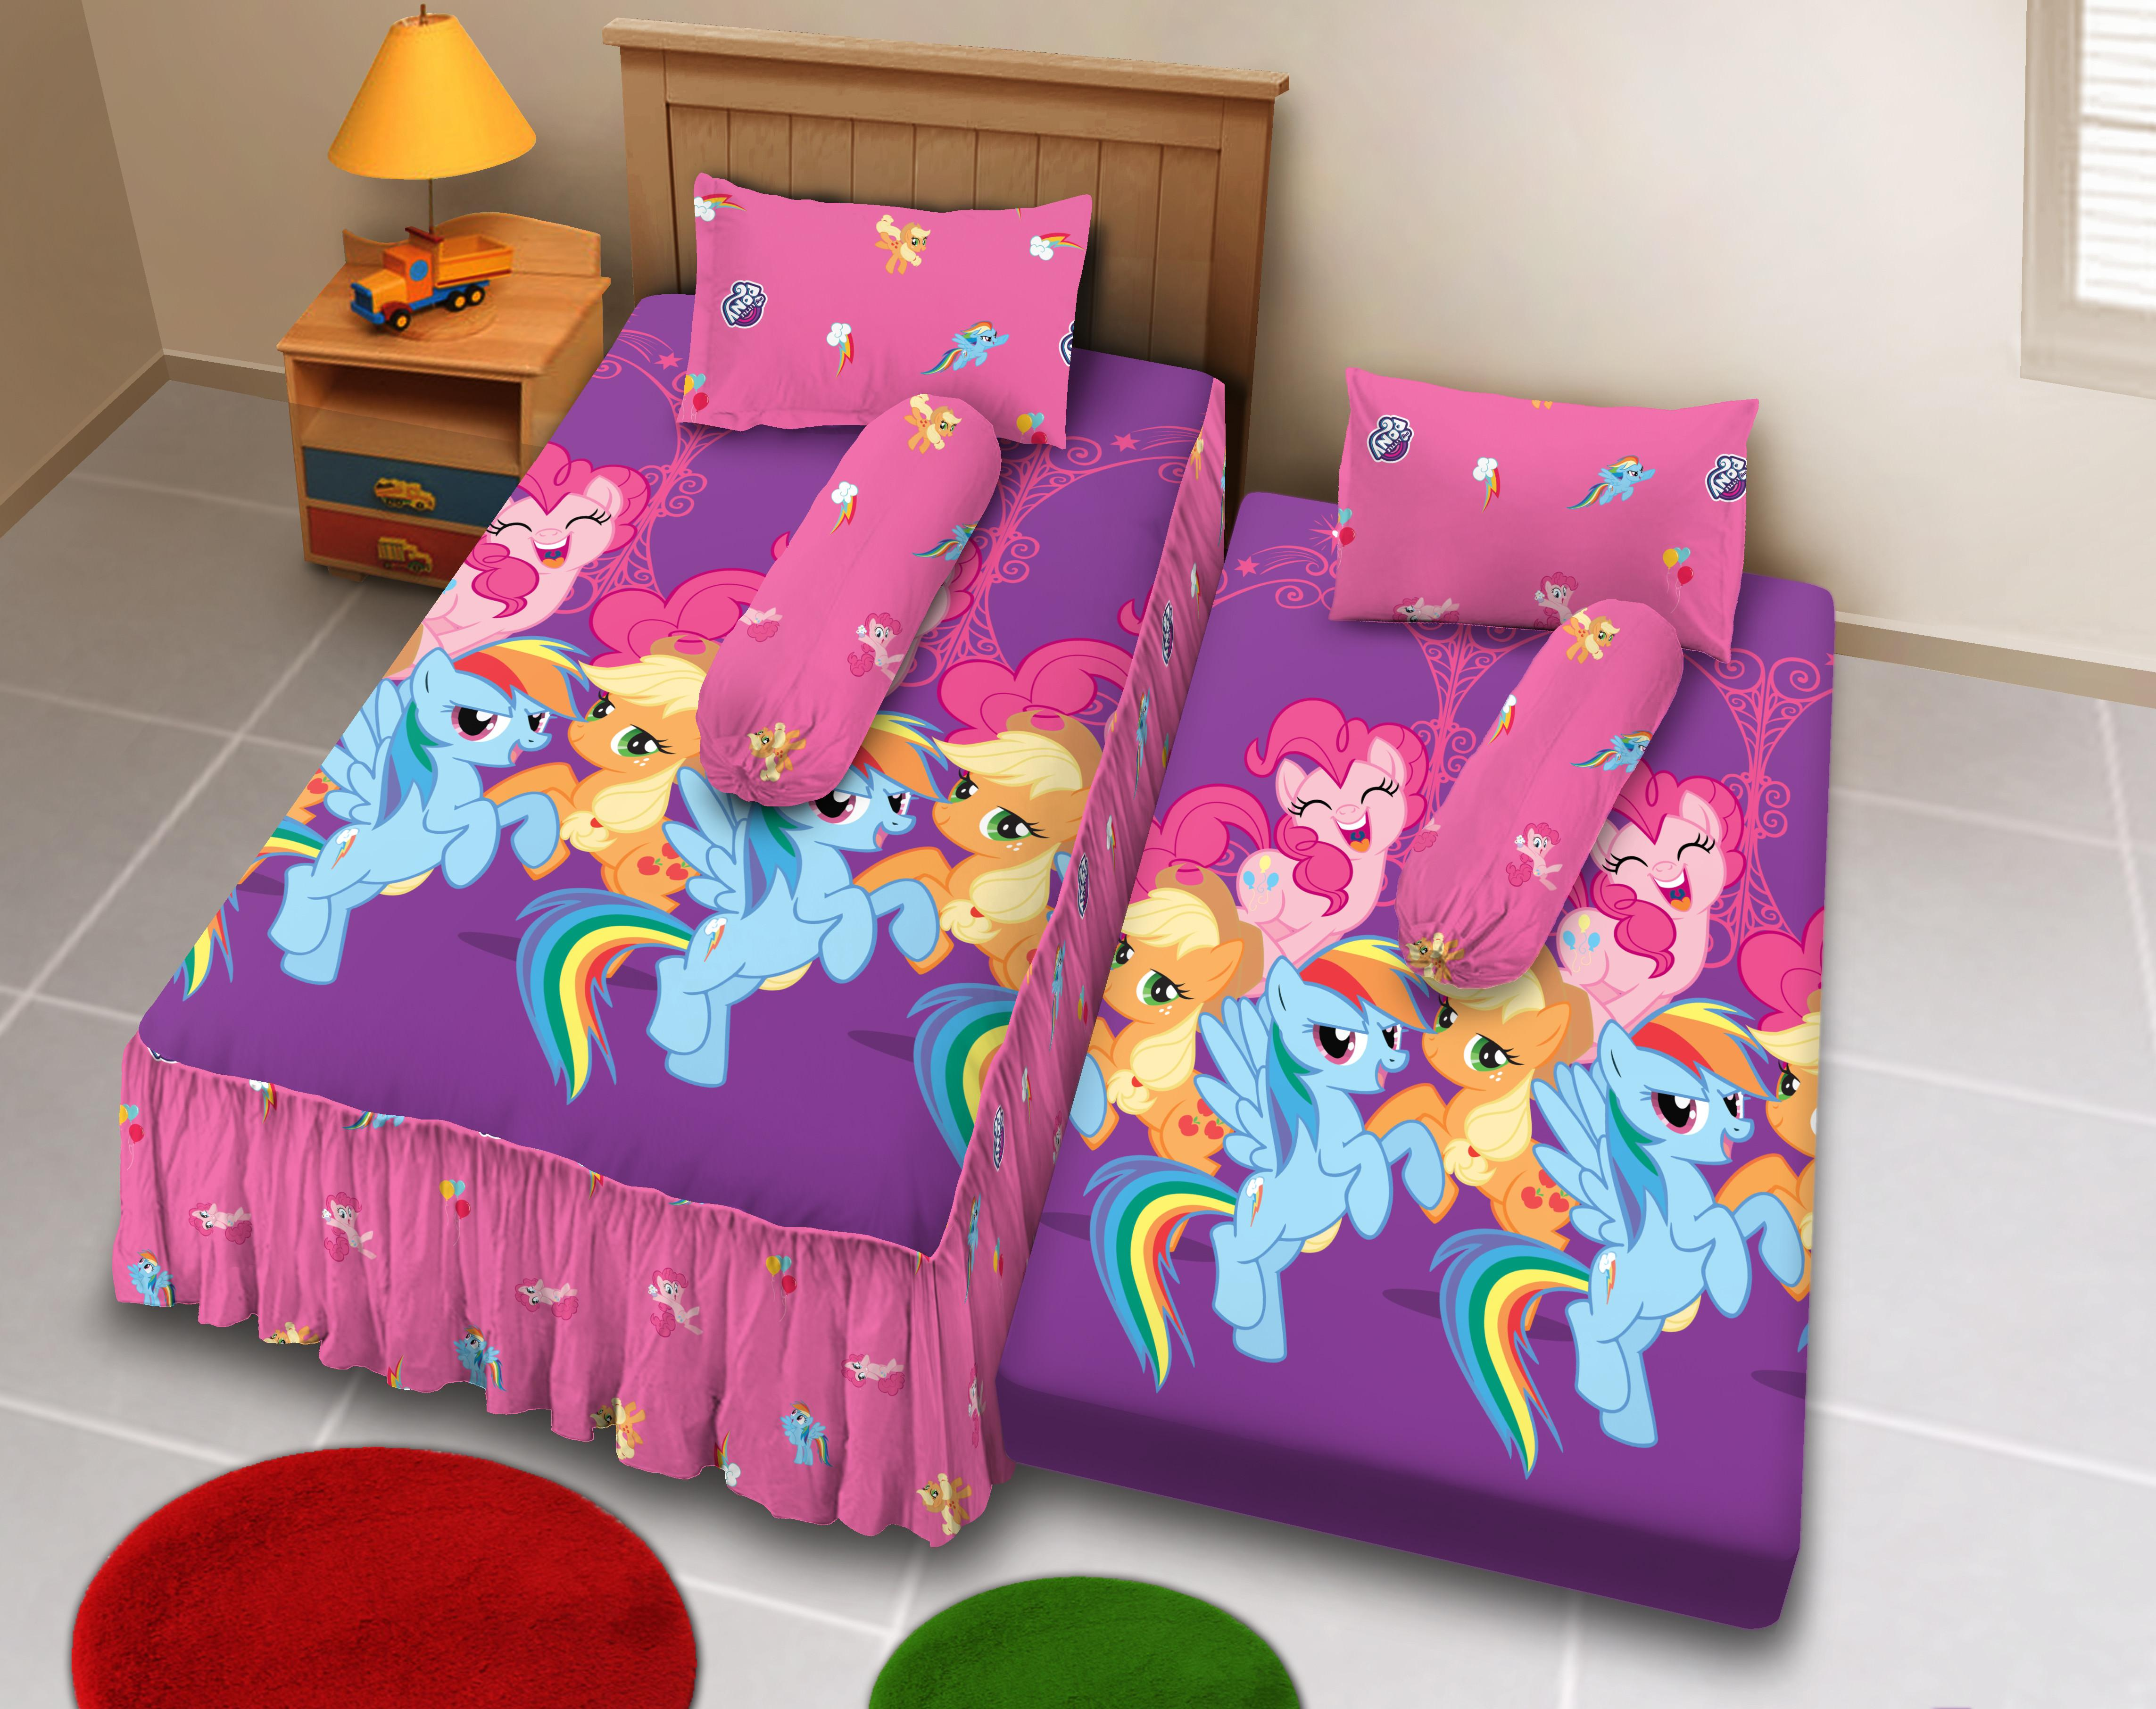 Kintakun D'luxe Sprei 2in1 - 120 x 200 (Single) - Classic Little Pony